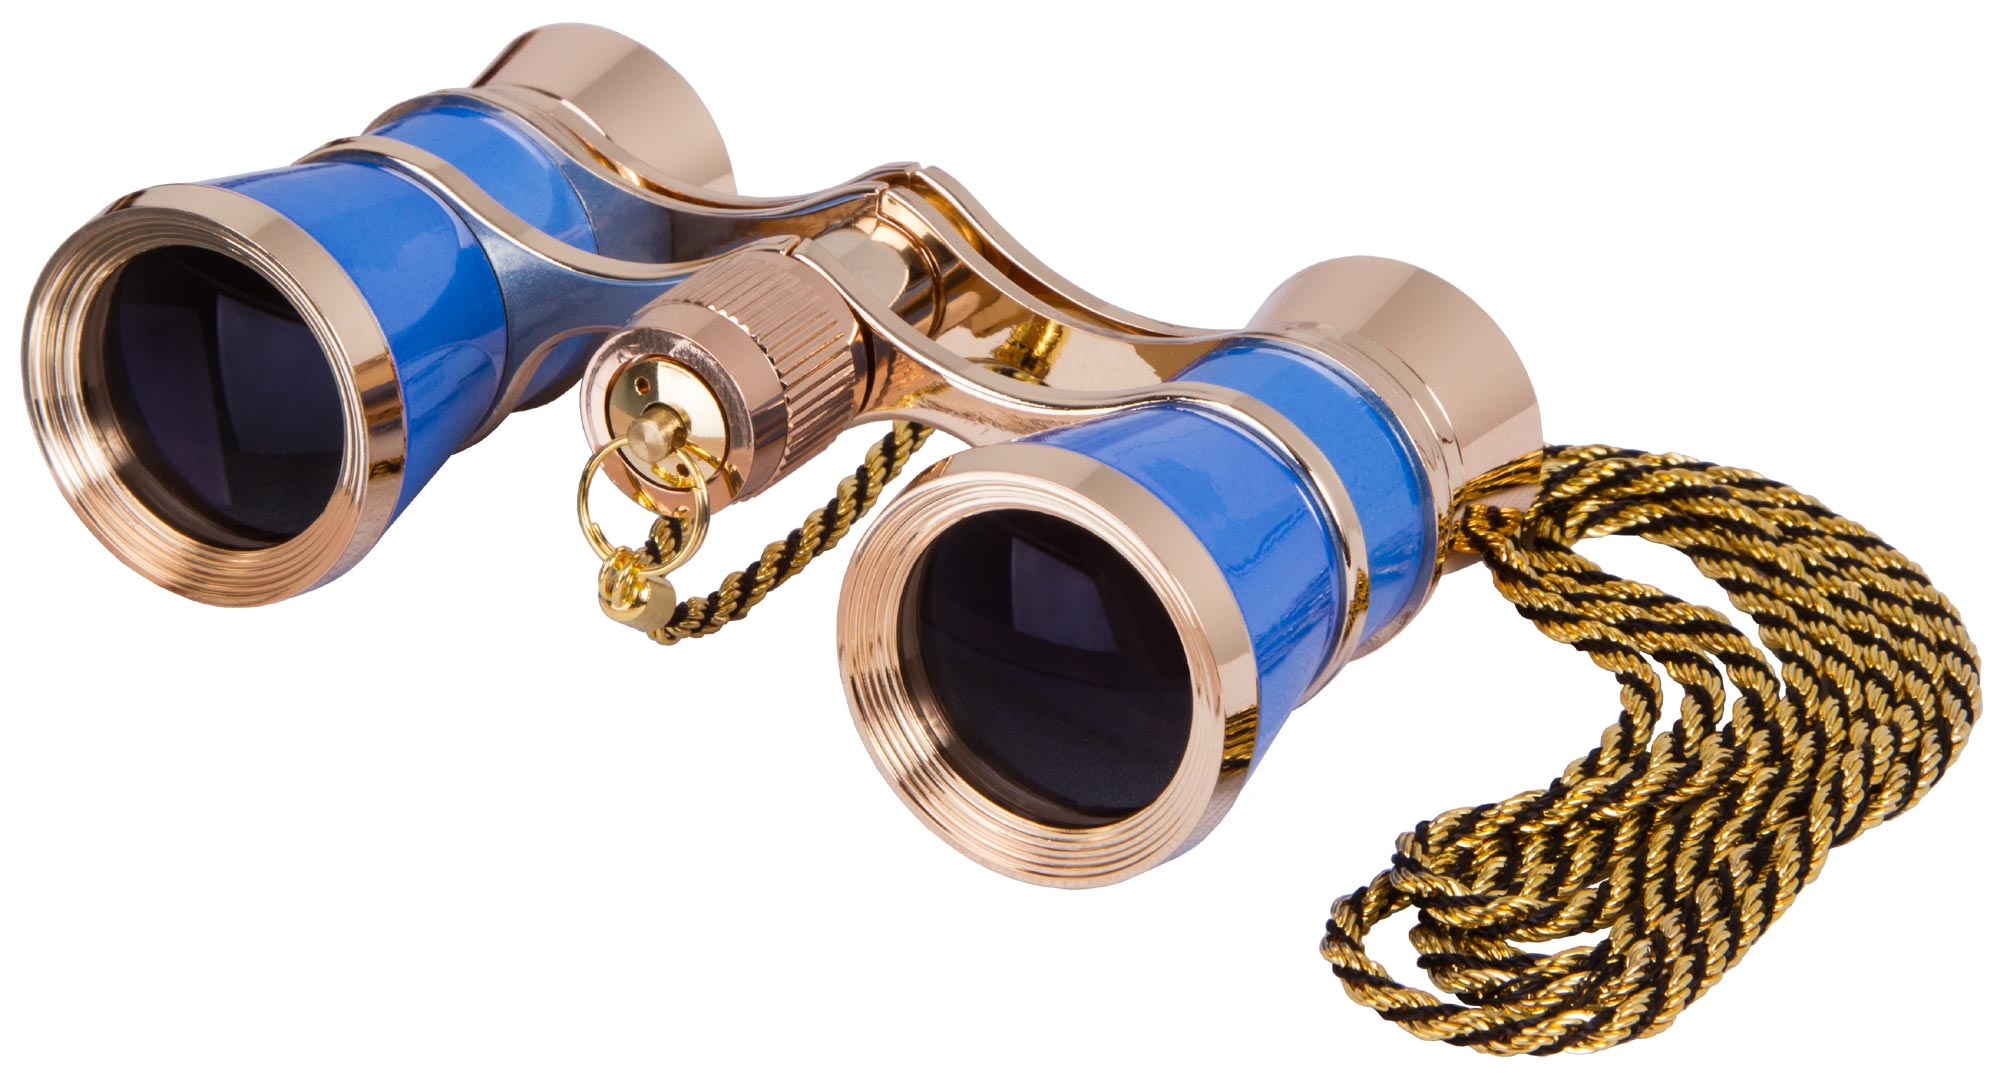 Levenhuk Broadway 325C Blue Wave Opera Glasses with a chain illustration